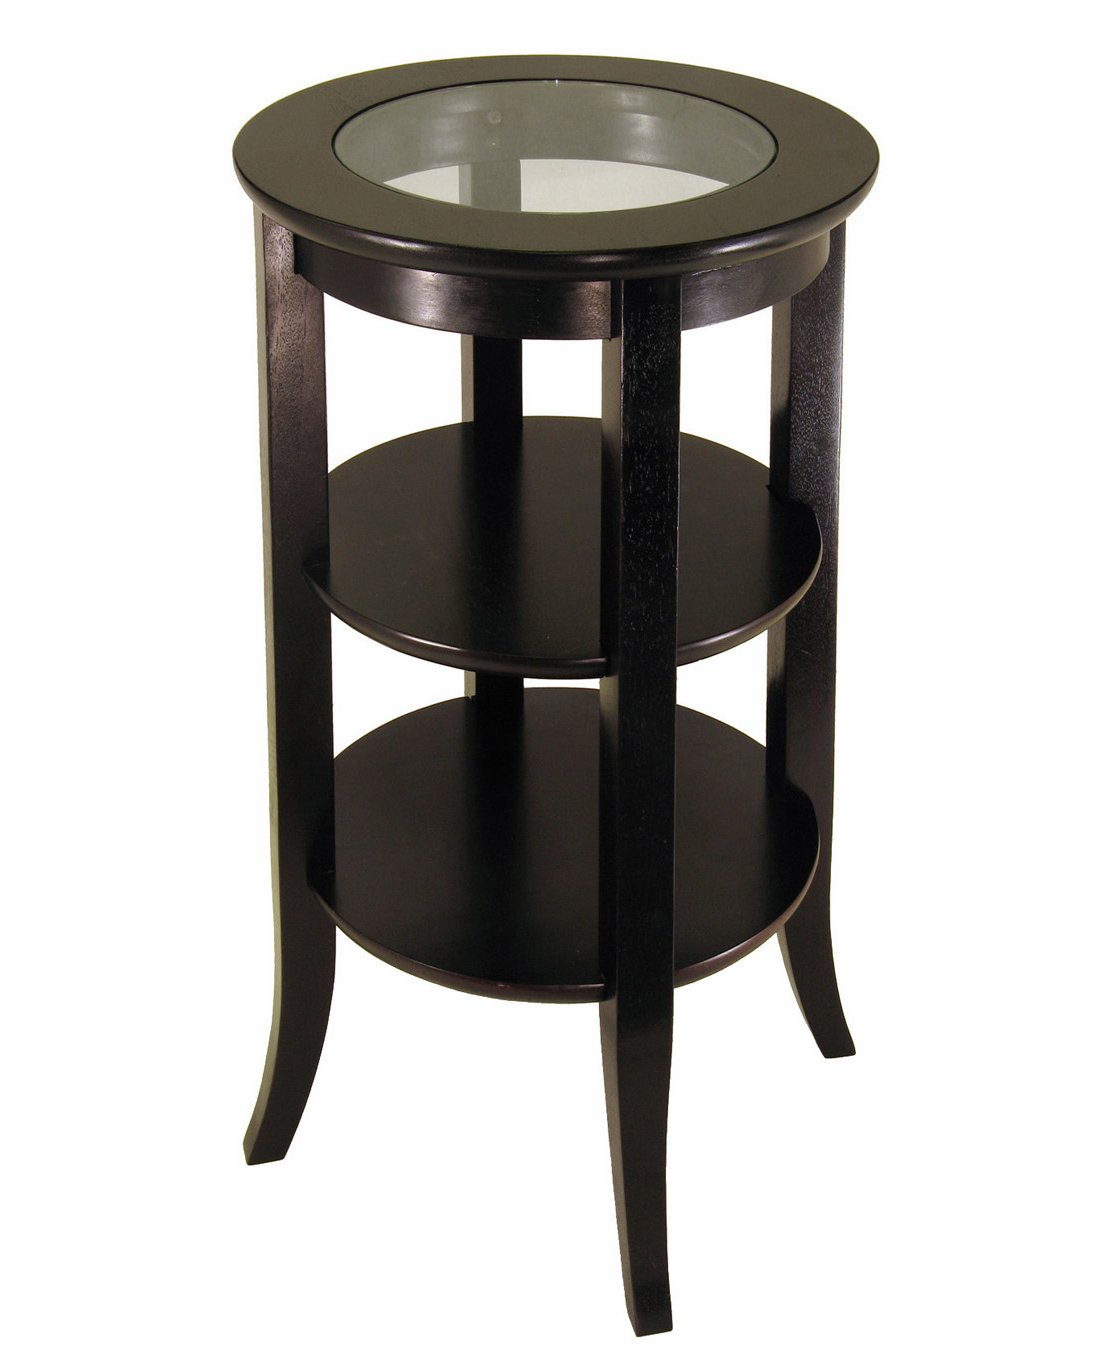 Amazon.com: Frenchi Furniture Wood Round Side /Accent Table ...